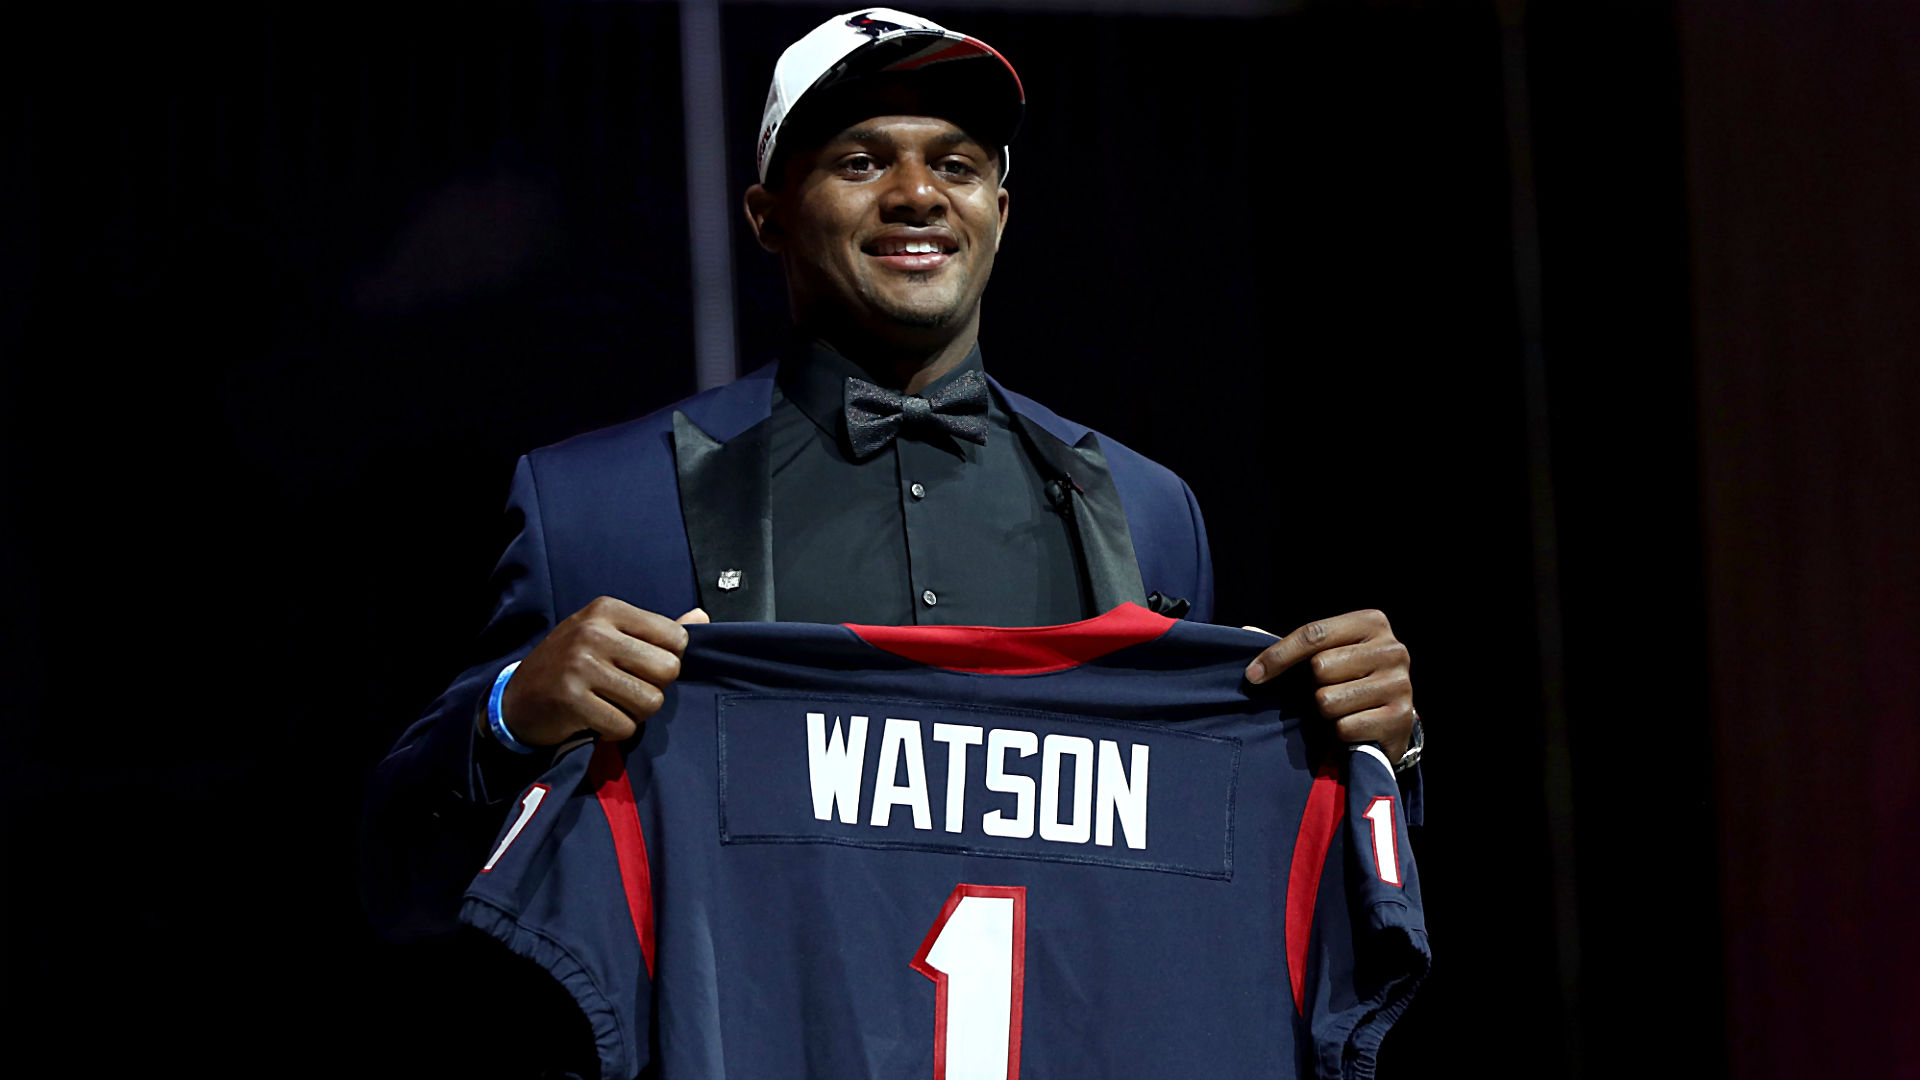 Deshaun Watson donates first National Football League game check to Houston flood victims